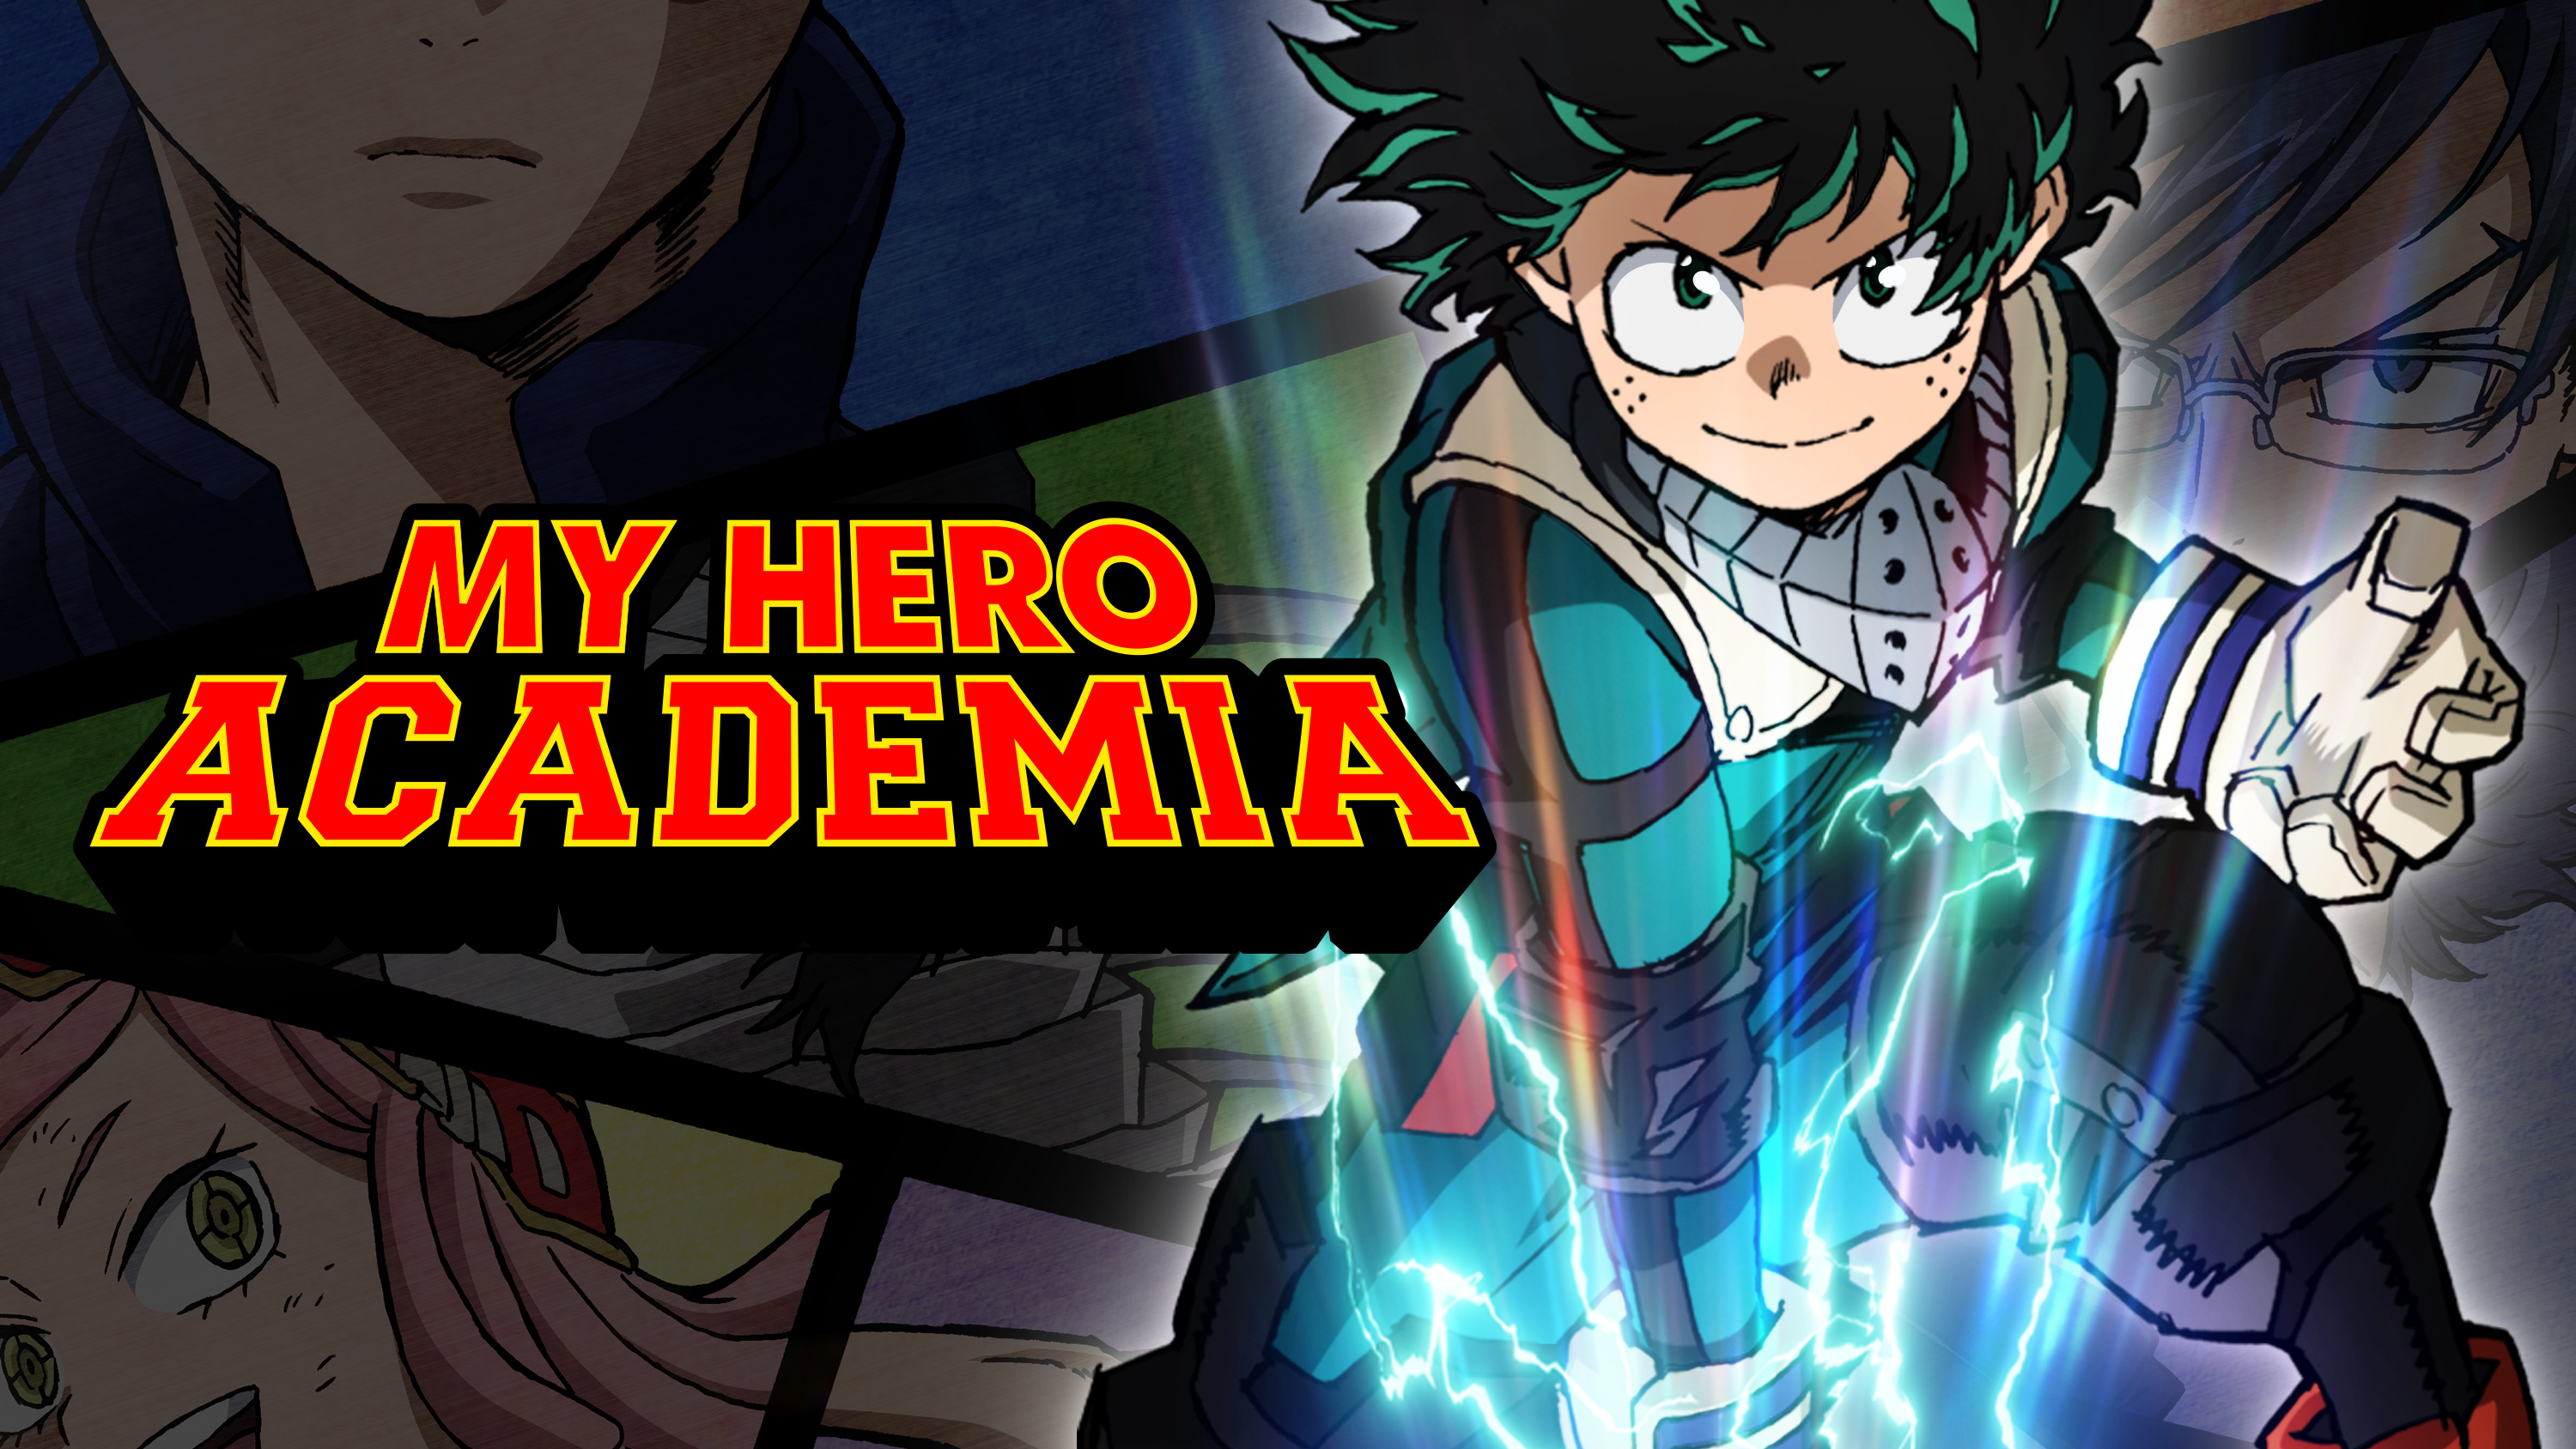 My Hero Academia Chapter 255 Release Date and Raw Scans Leaks